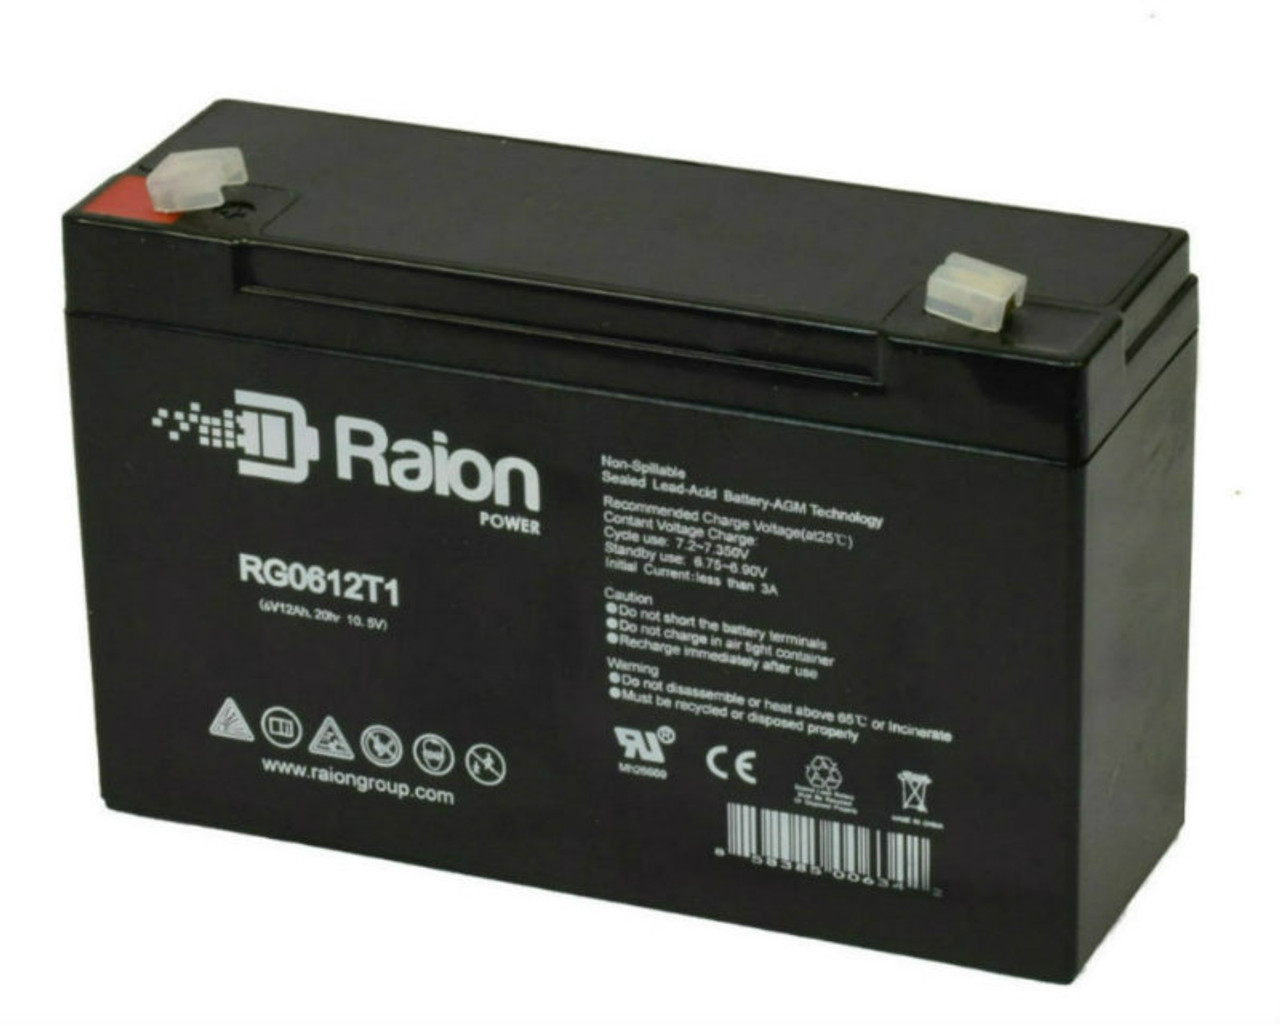 Raion Power RG06120T1 Replacement Battery Pack for Sonnenschein 1103 emergency light